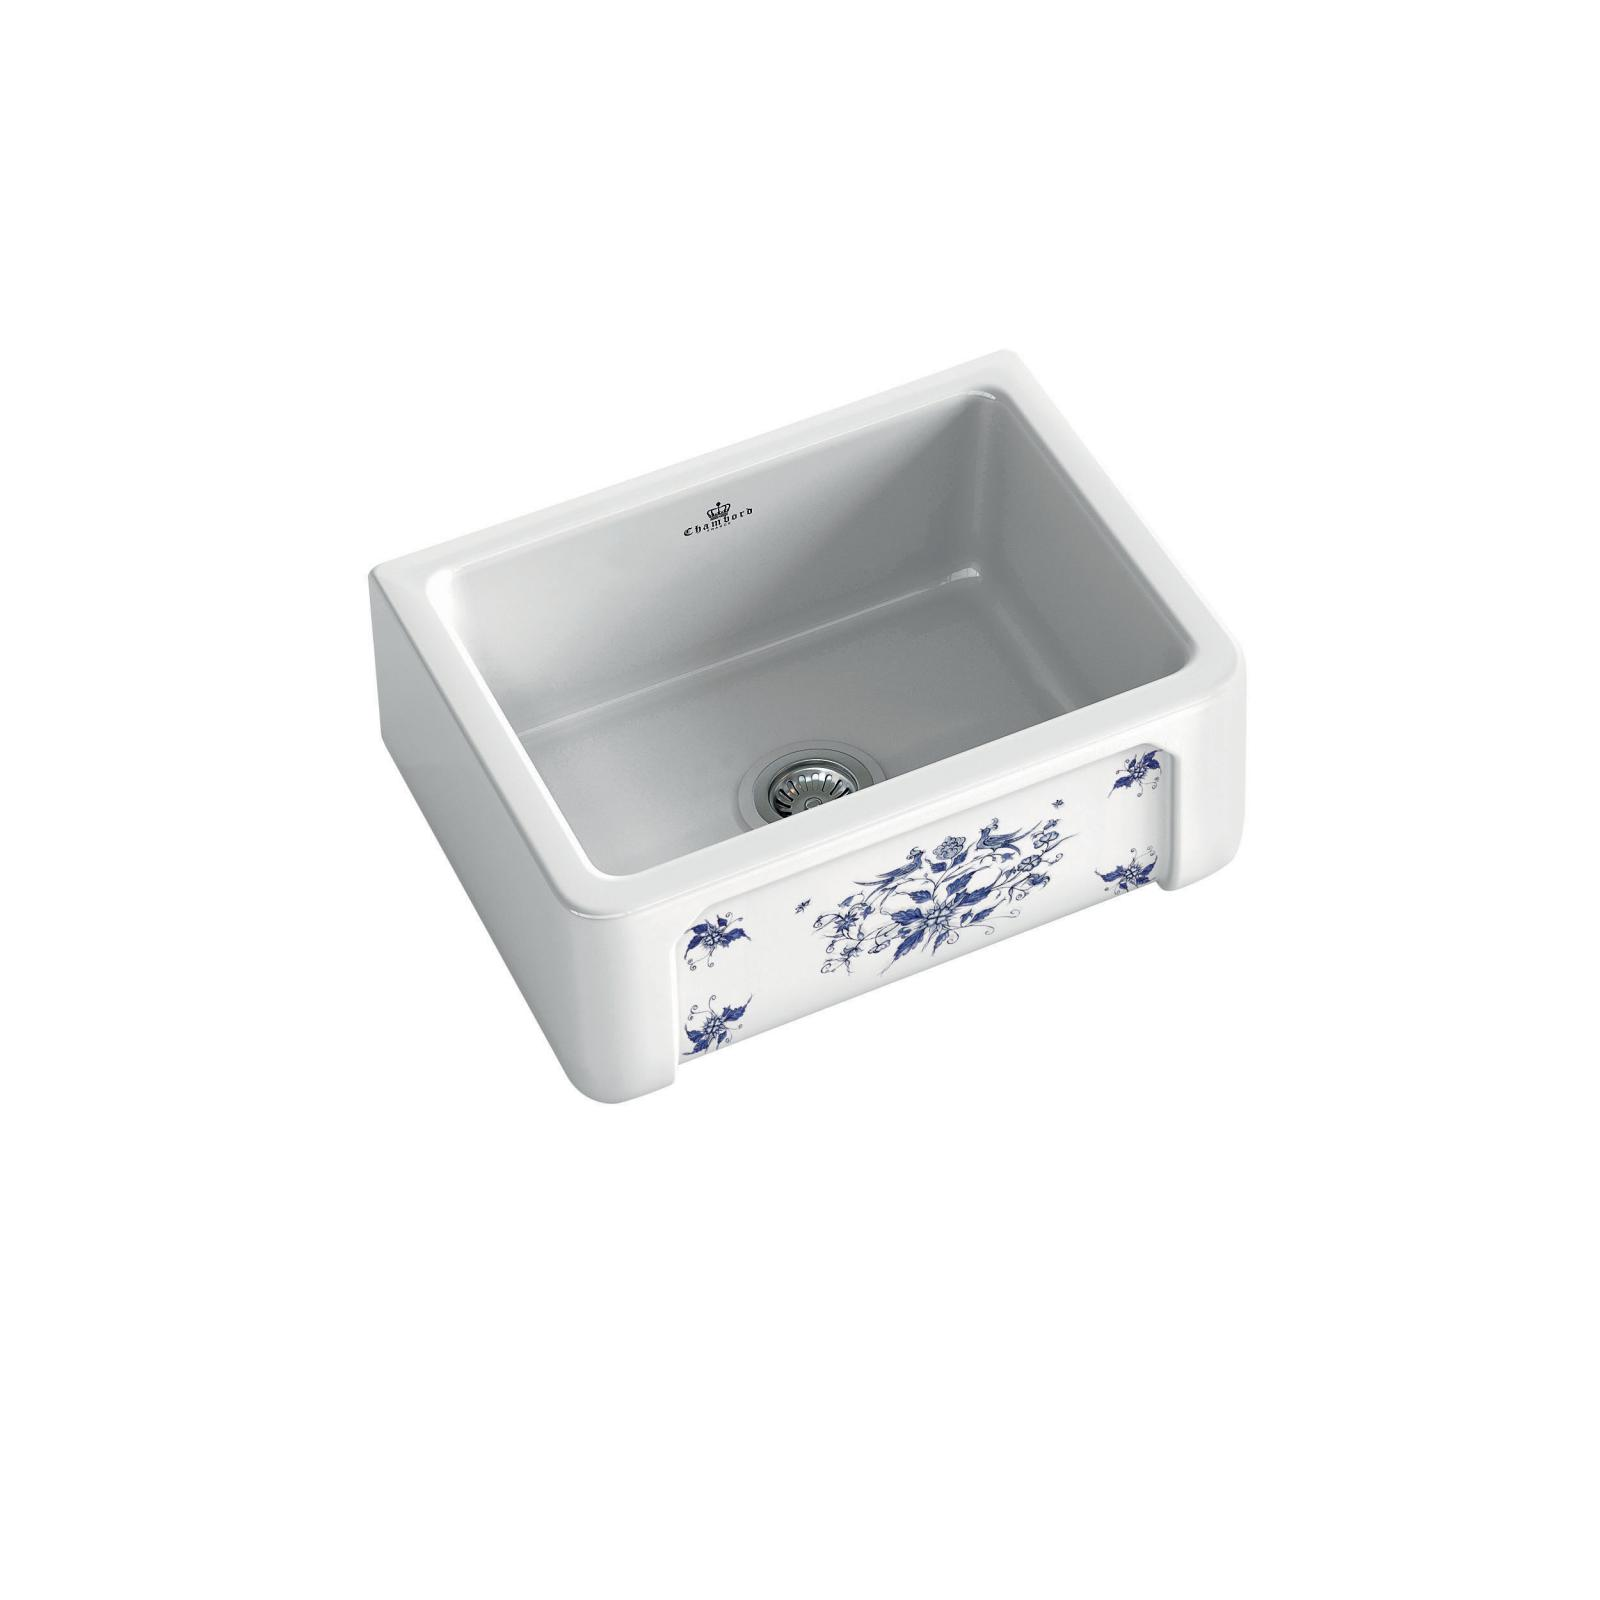 High-quality sink Henri I Moustiers - single bowl, decorated ceramic - ambience 1